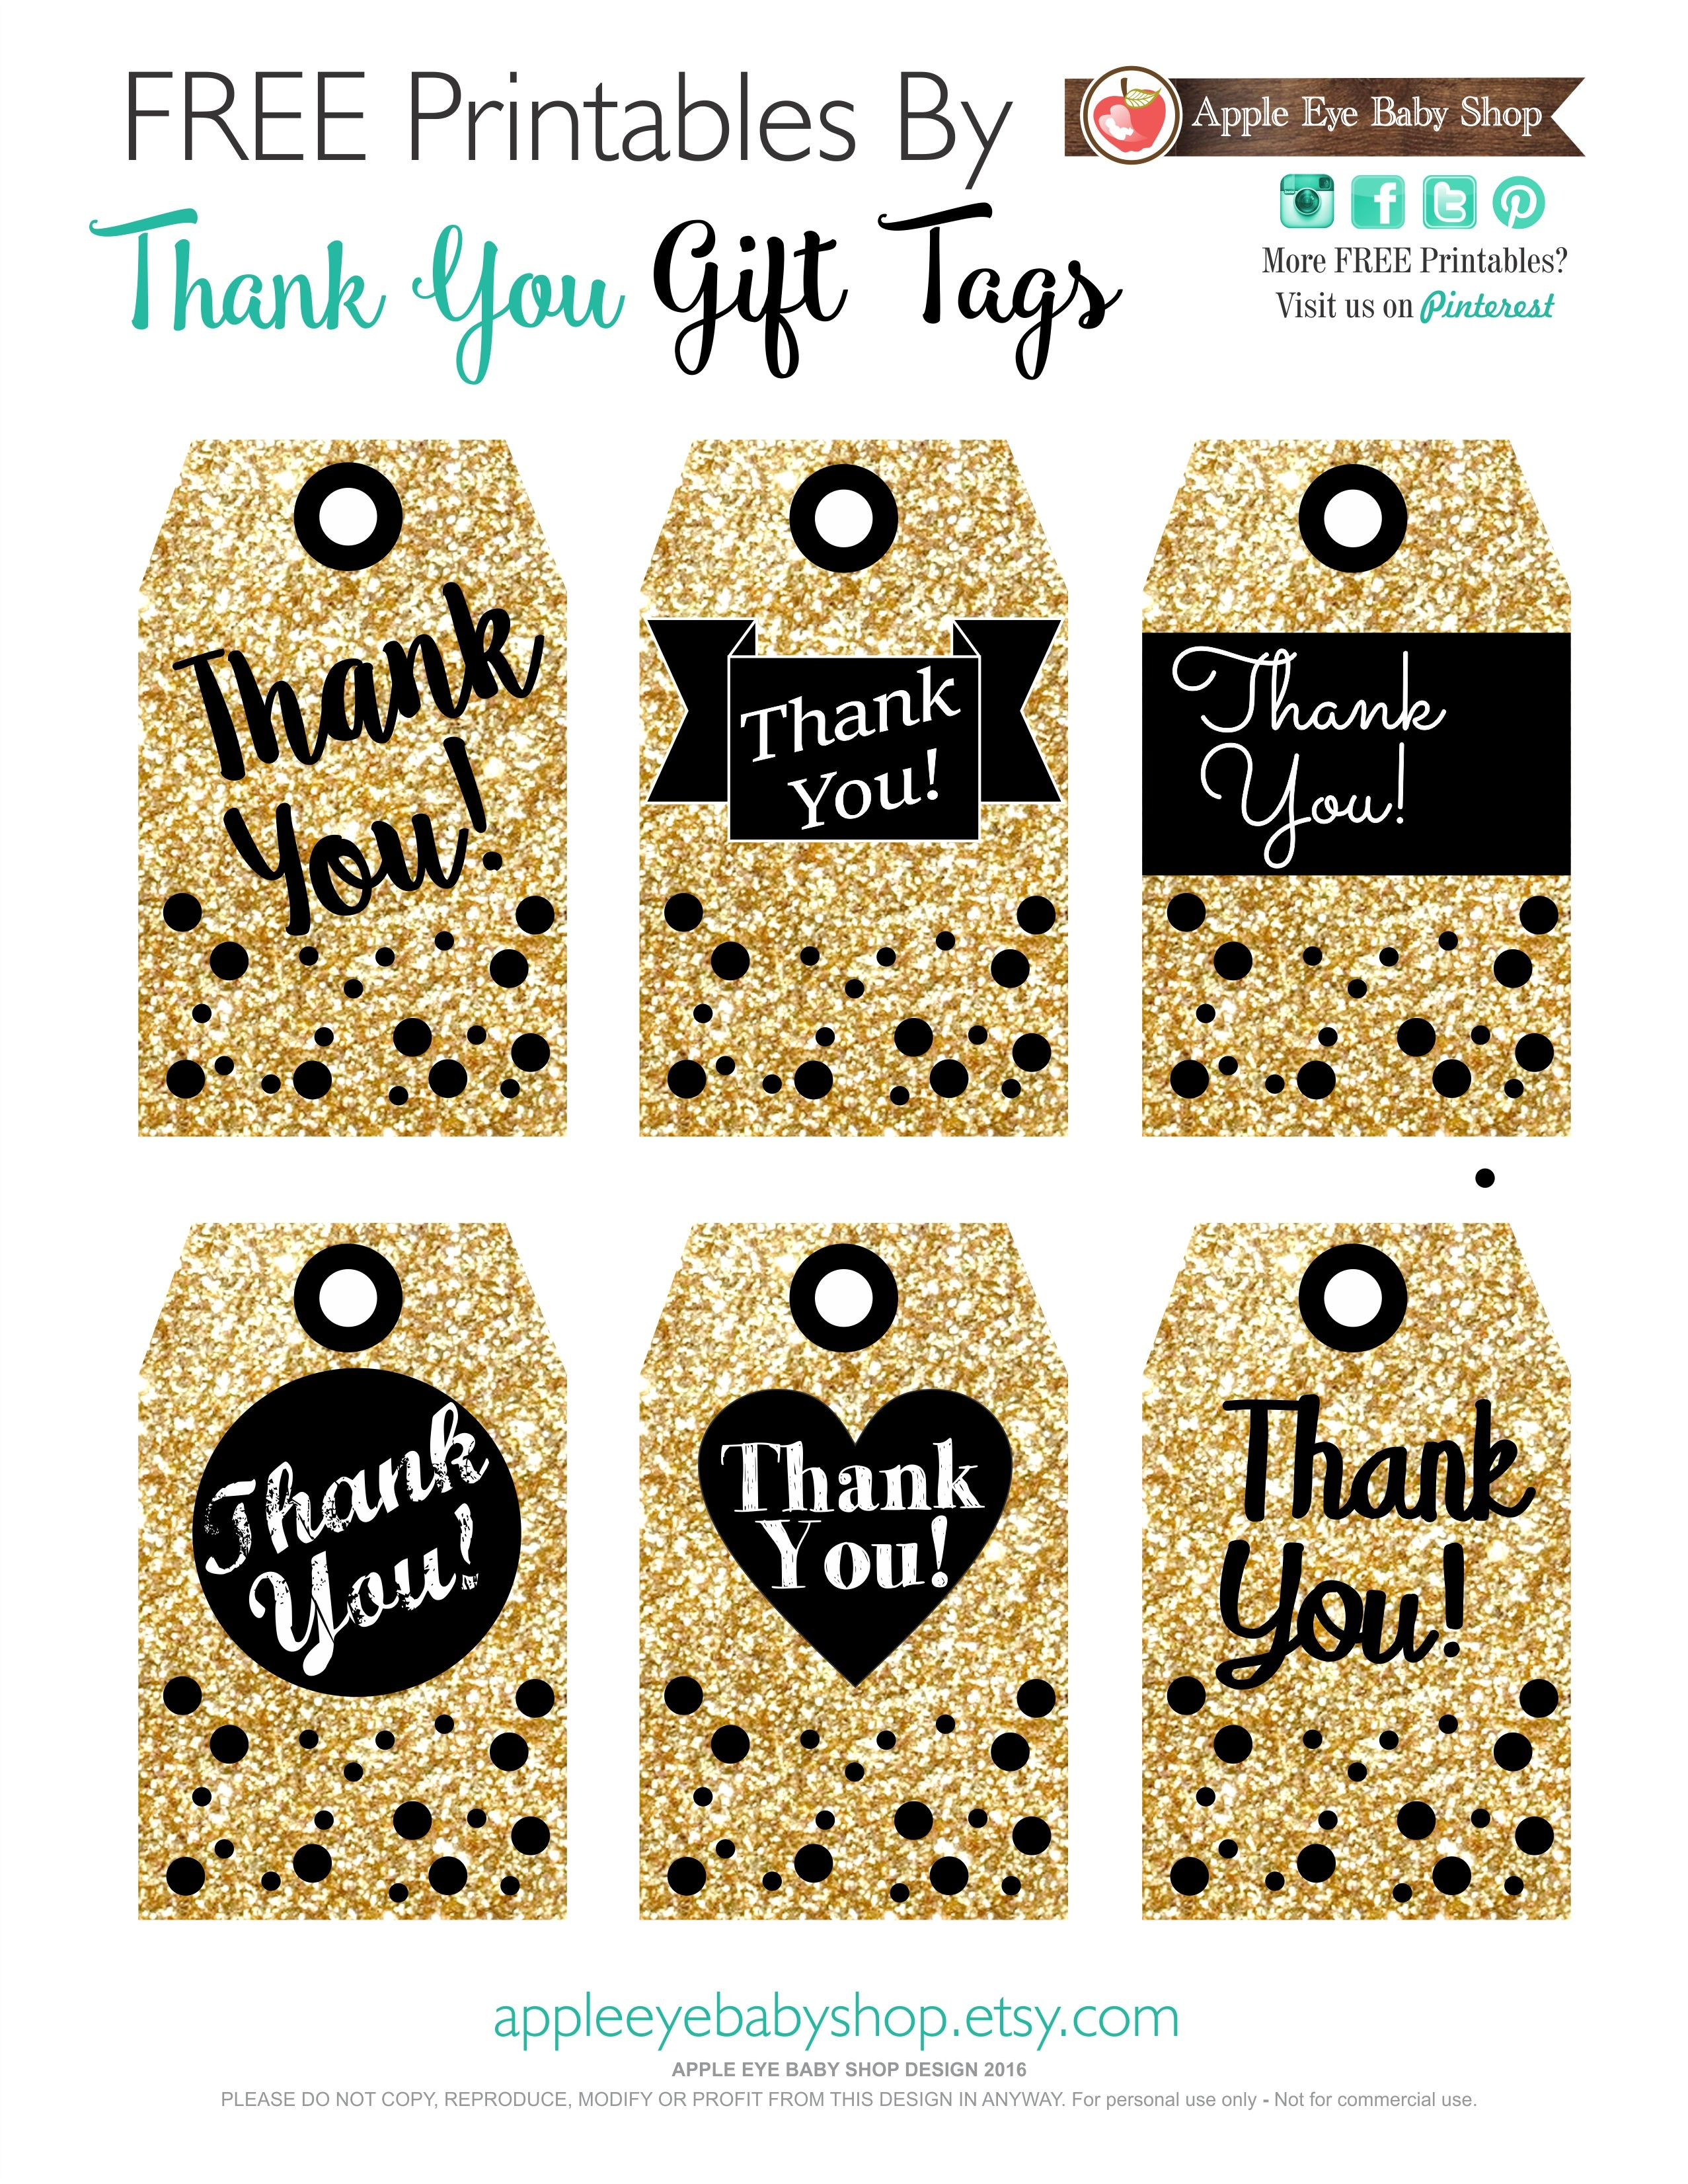 Printables Gift Tags Gold Glitter & Black | I ♥ Packaging Designs - Free Printable Thank You Tags For Birthdays